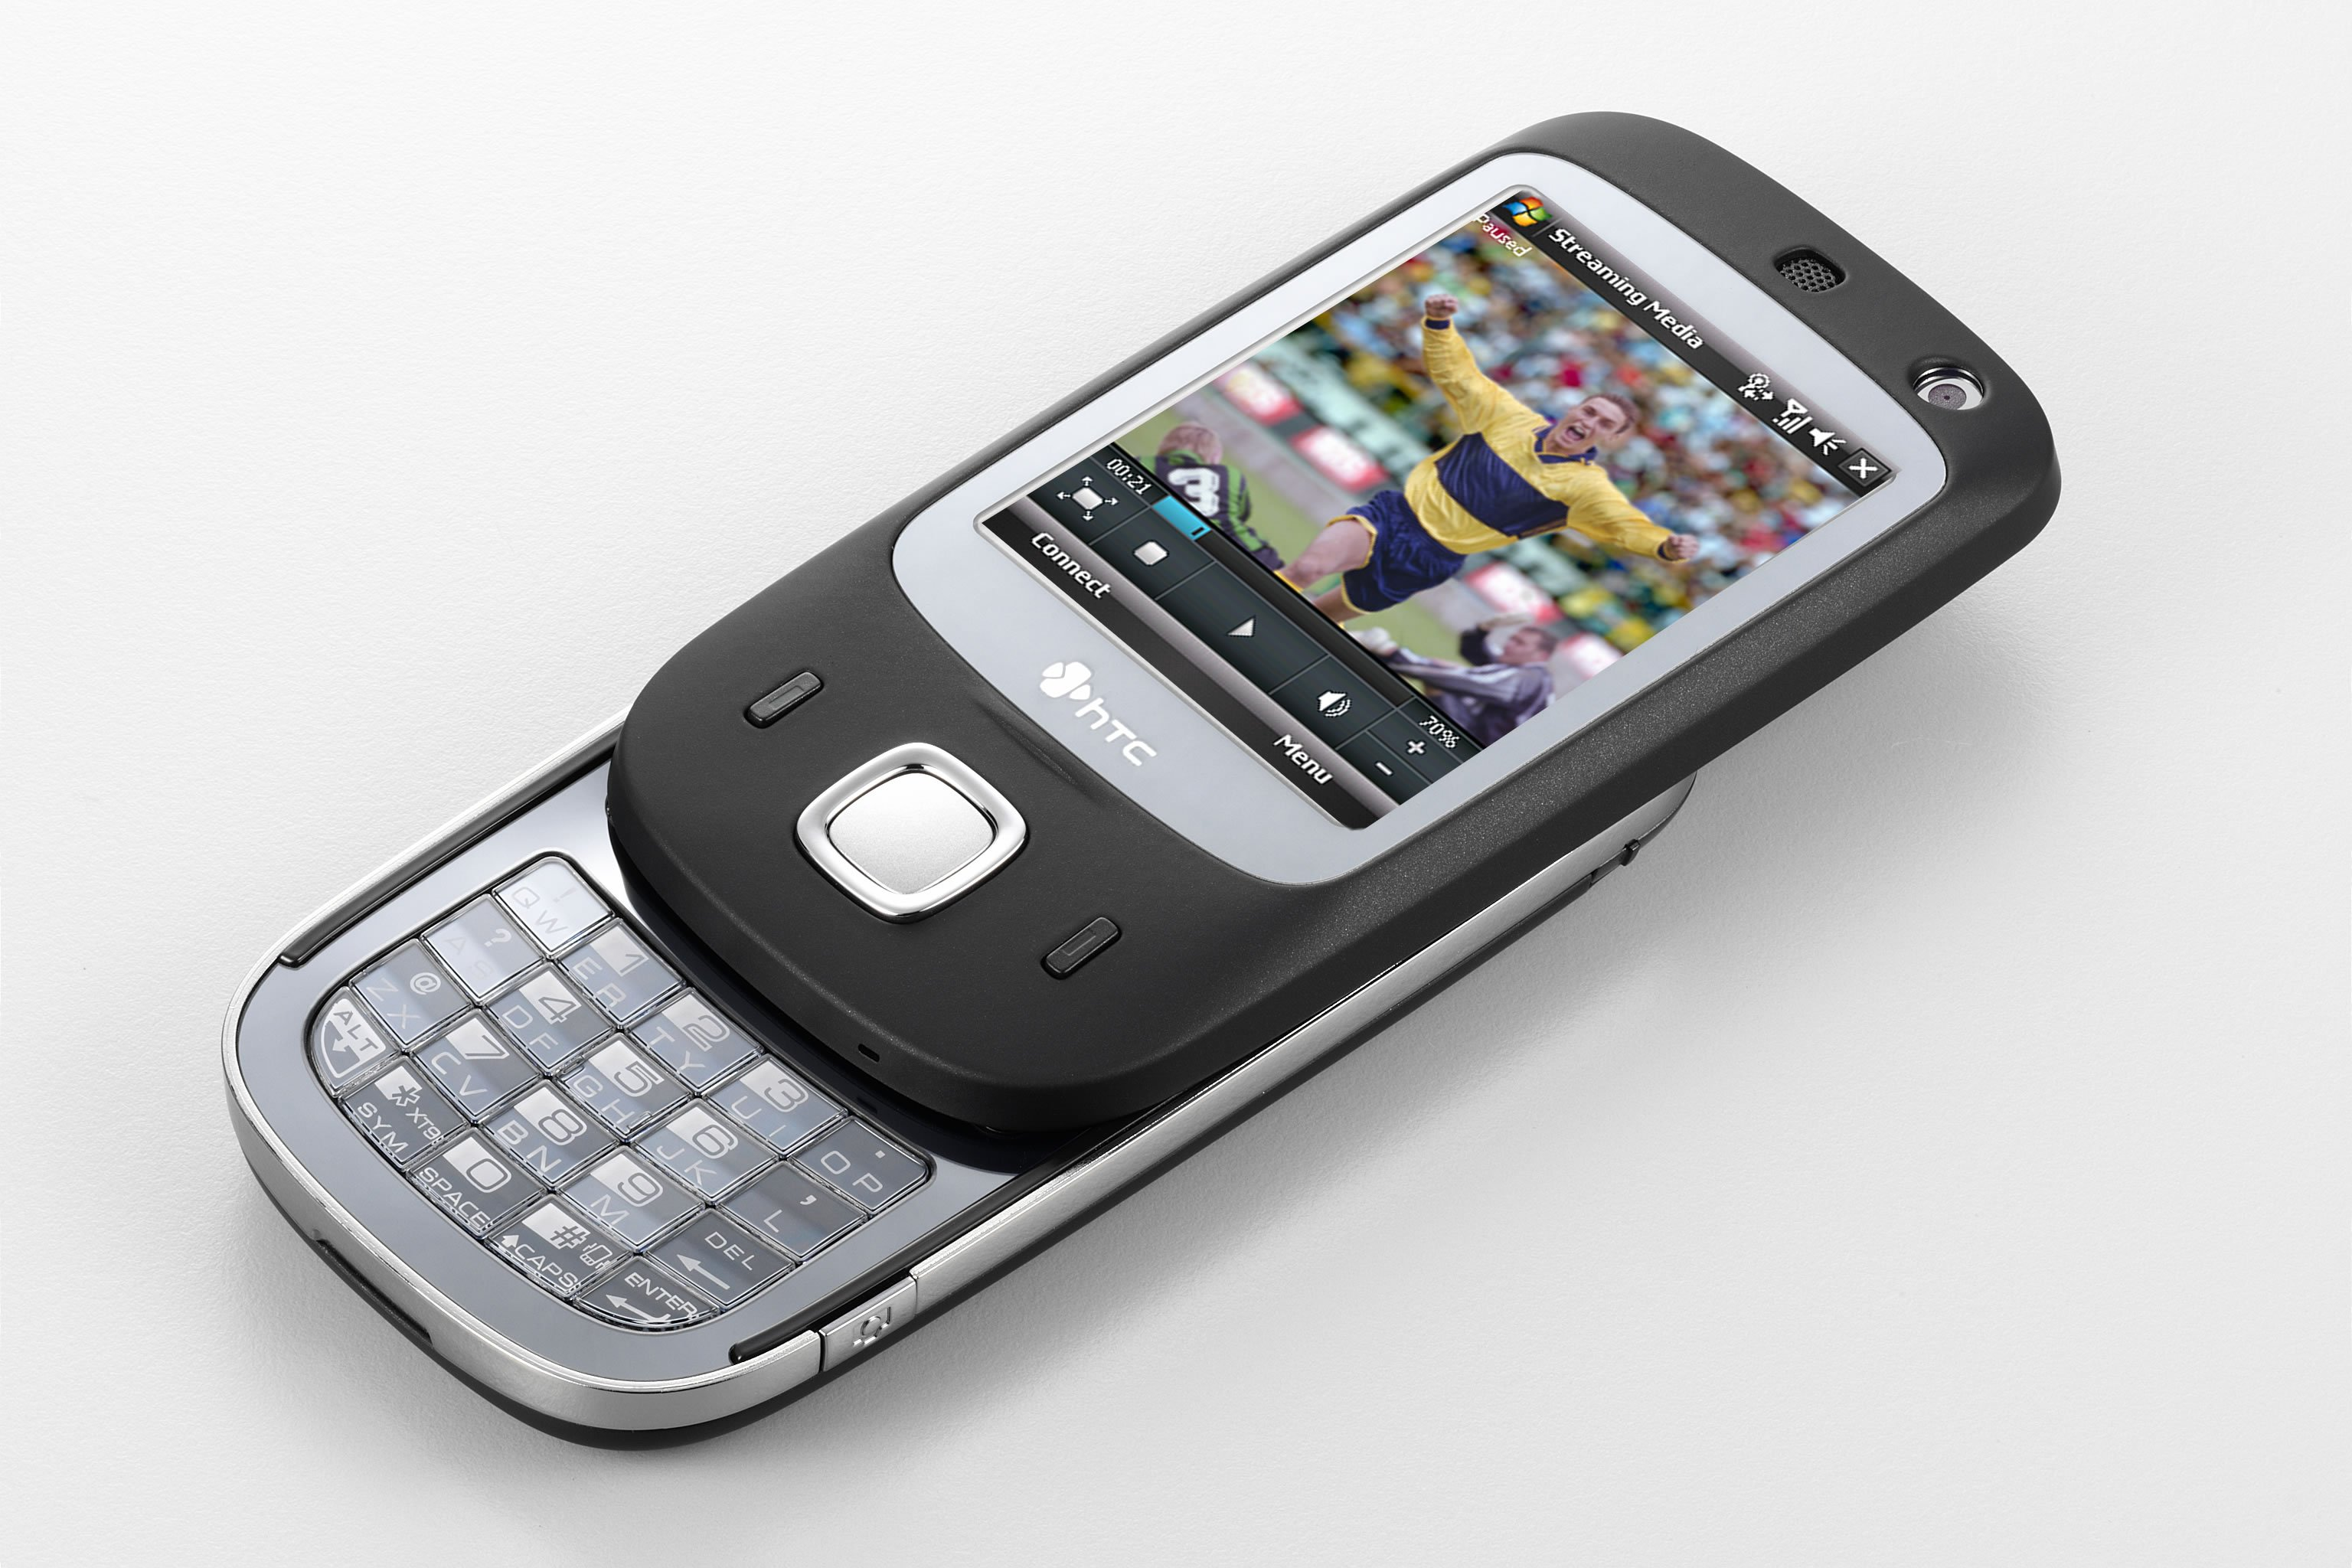 htc touch specs review release date phonesdata. Black Bedroom Furniture Sets. Home Design Ideas